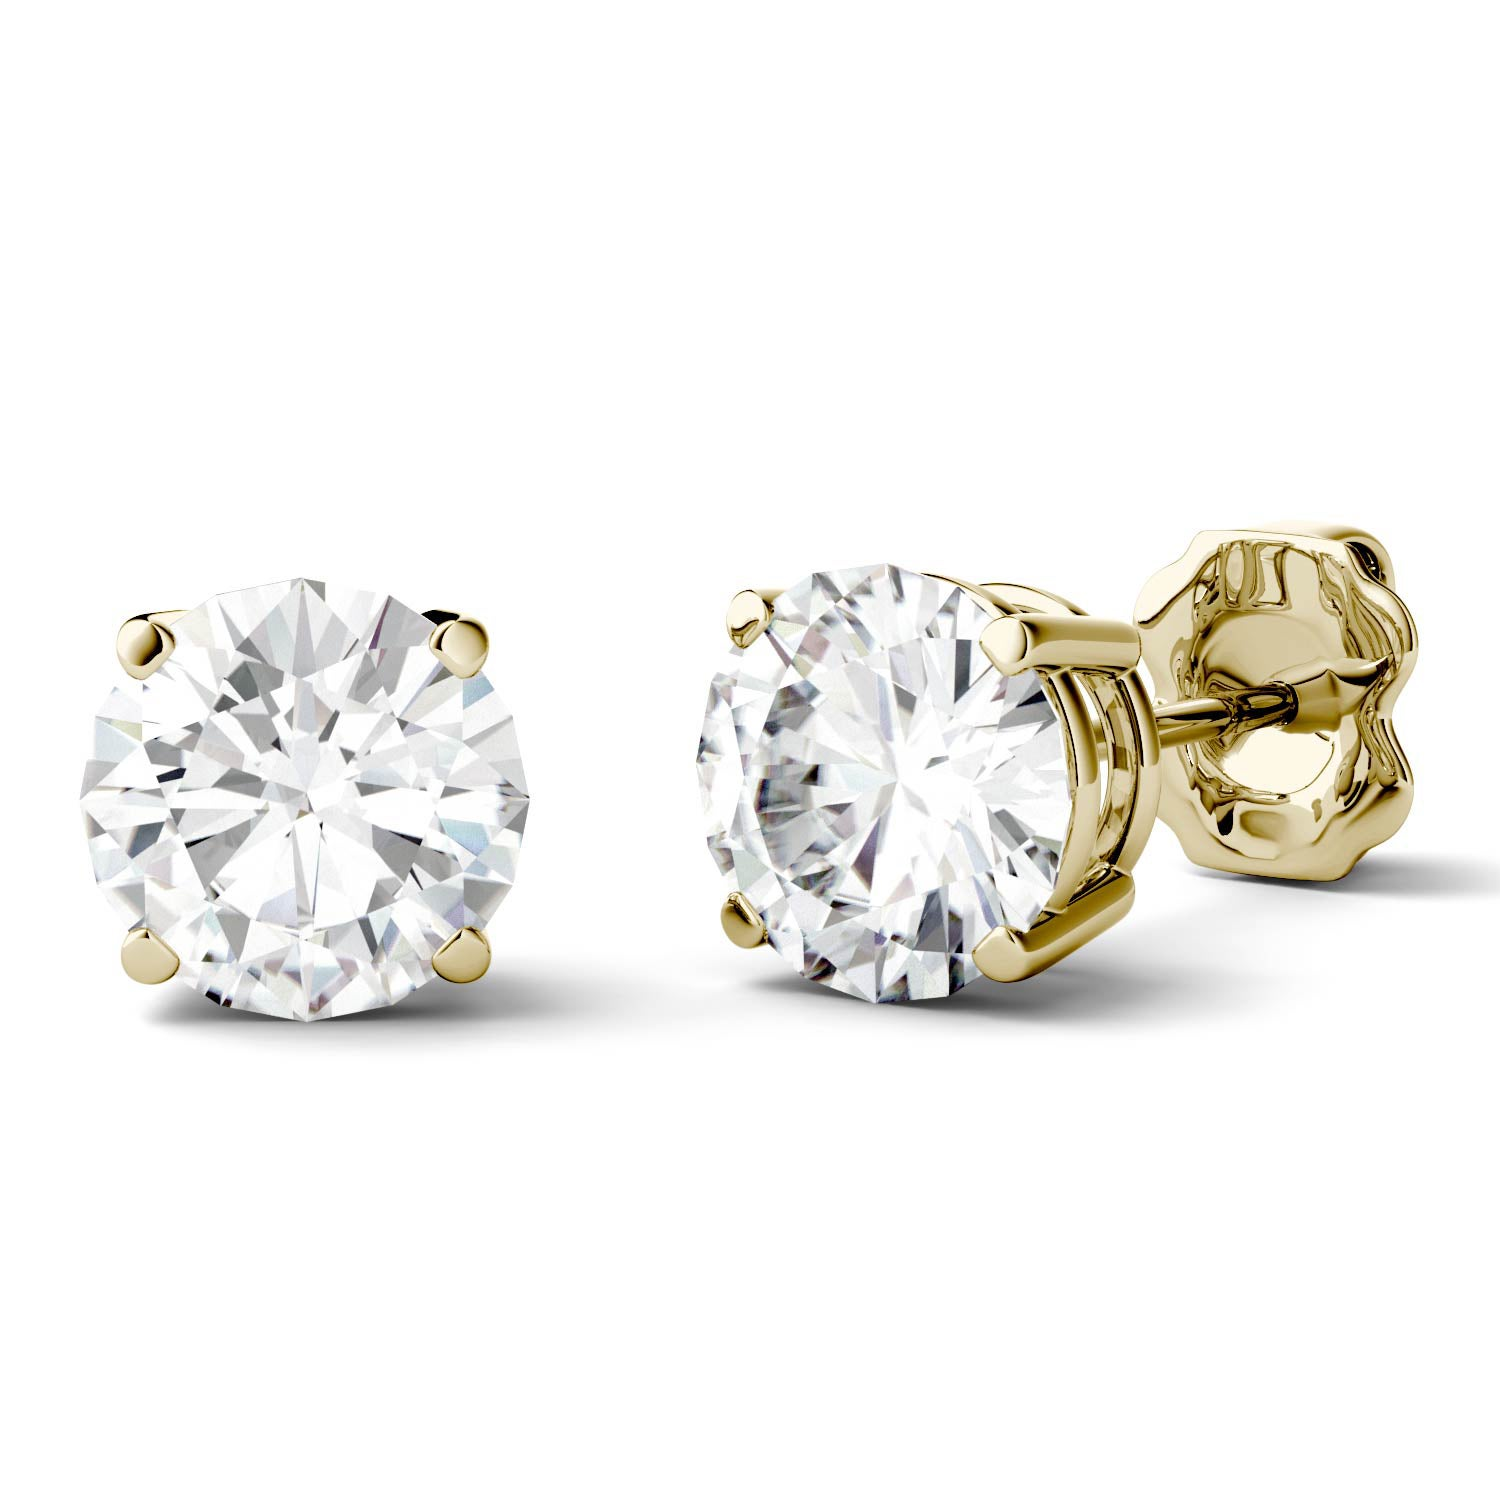 one gold earring hole bezel great yel genuine diamond stud tiny a earrings set products ideal gift or stunning measuring for copy white plated an with